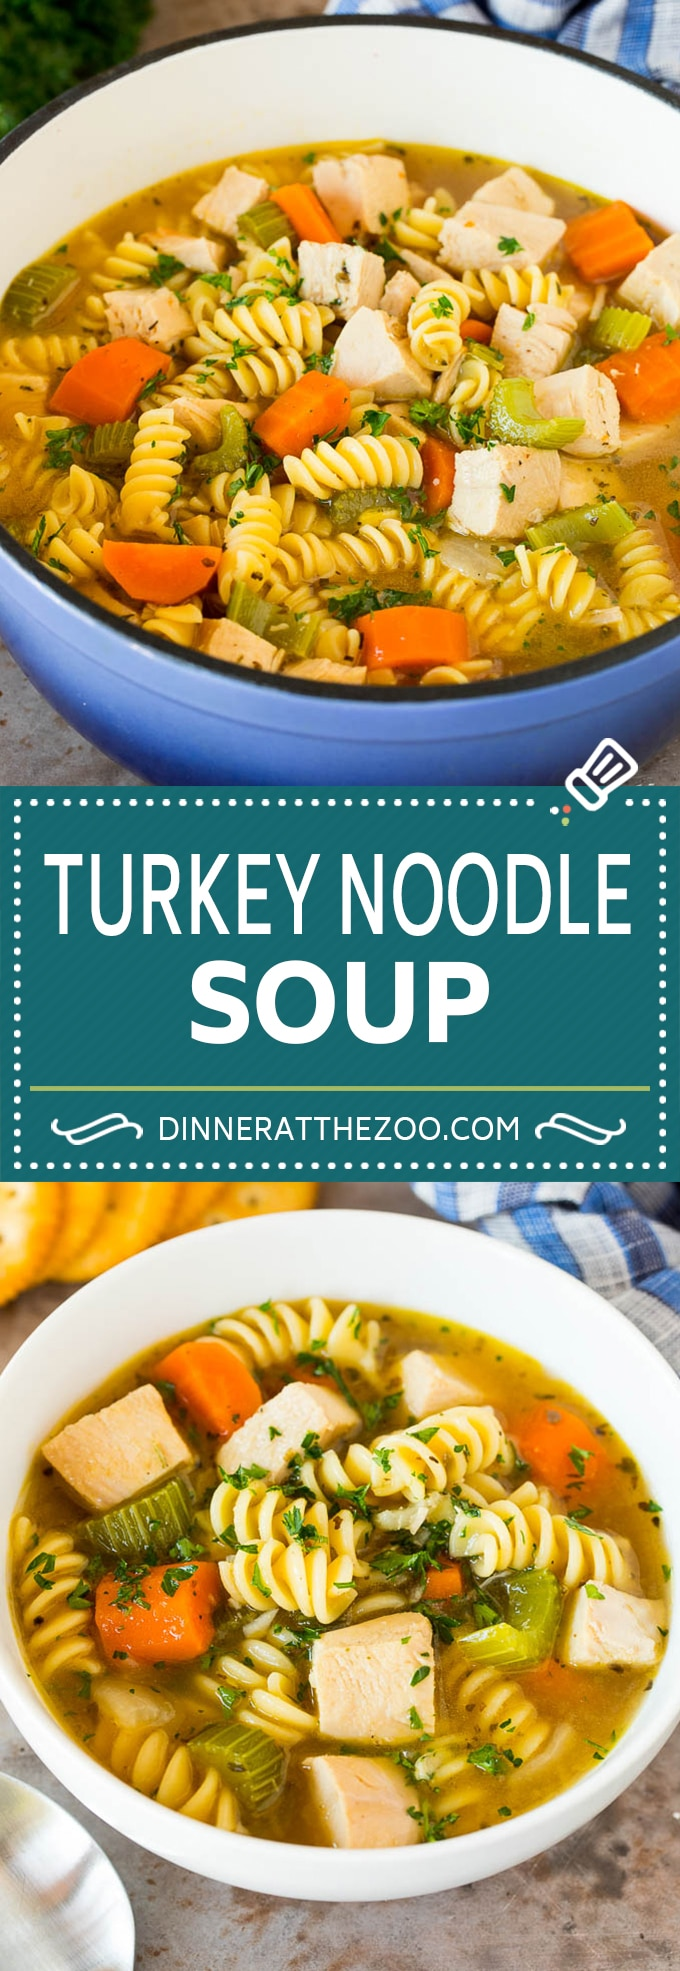 This turkey noodle soup is chunks of turkey, vegetables and pasta, all simmered together in a homemade broth.